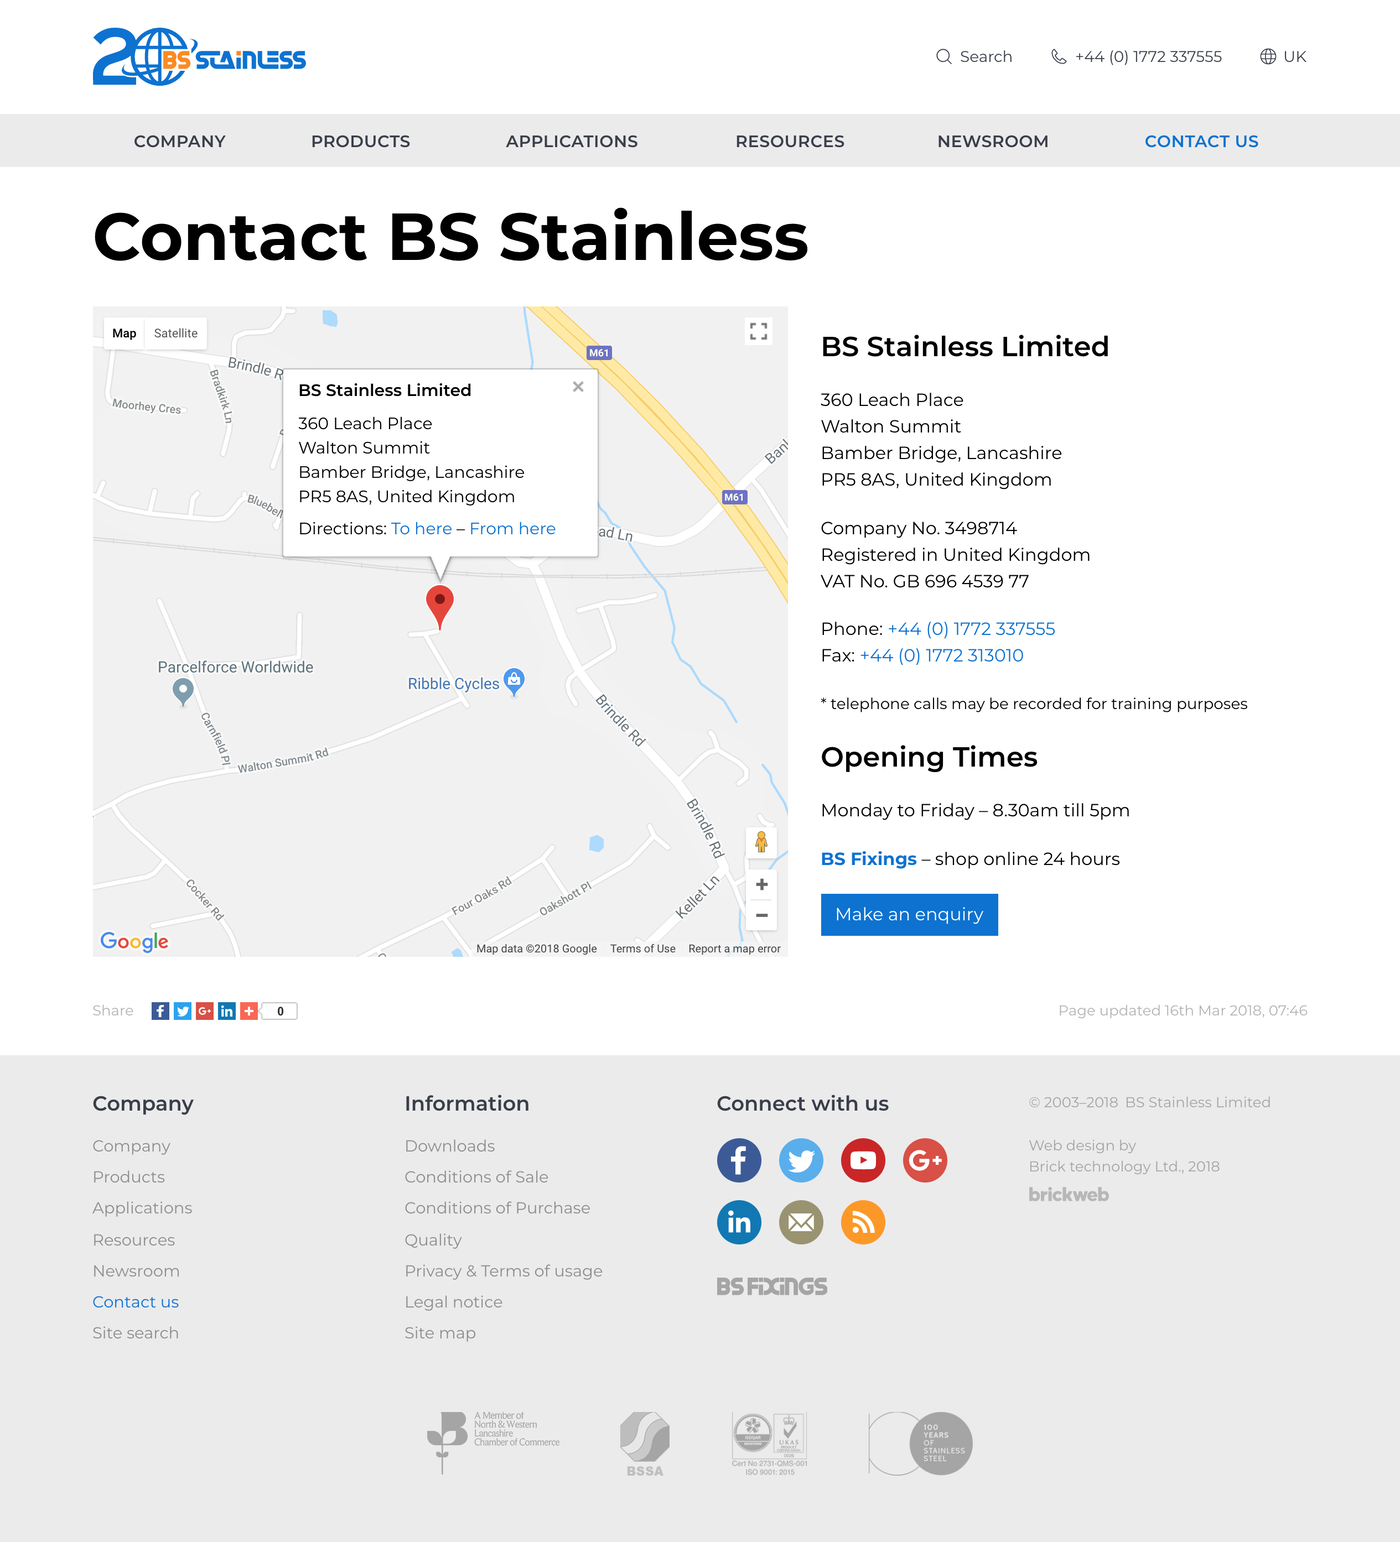 BS Stainless Contact us